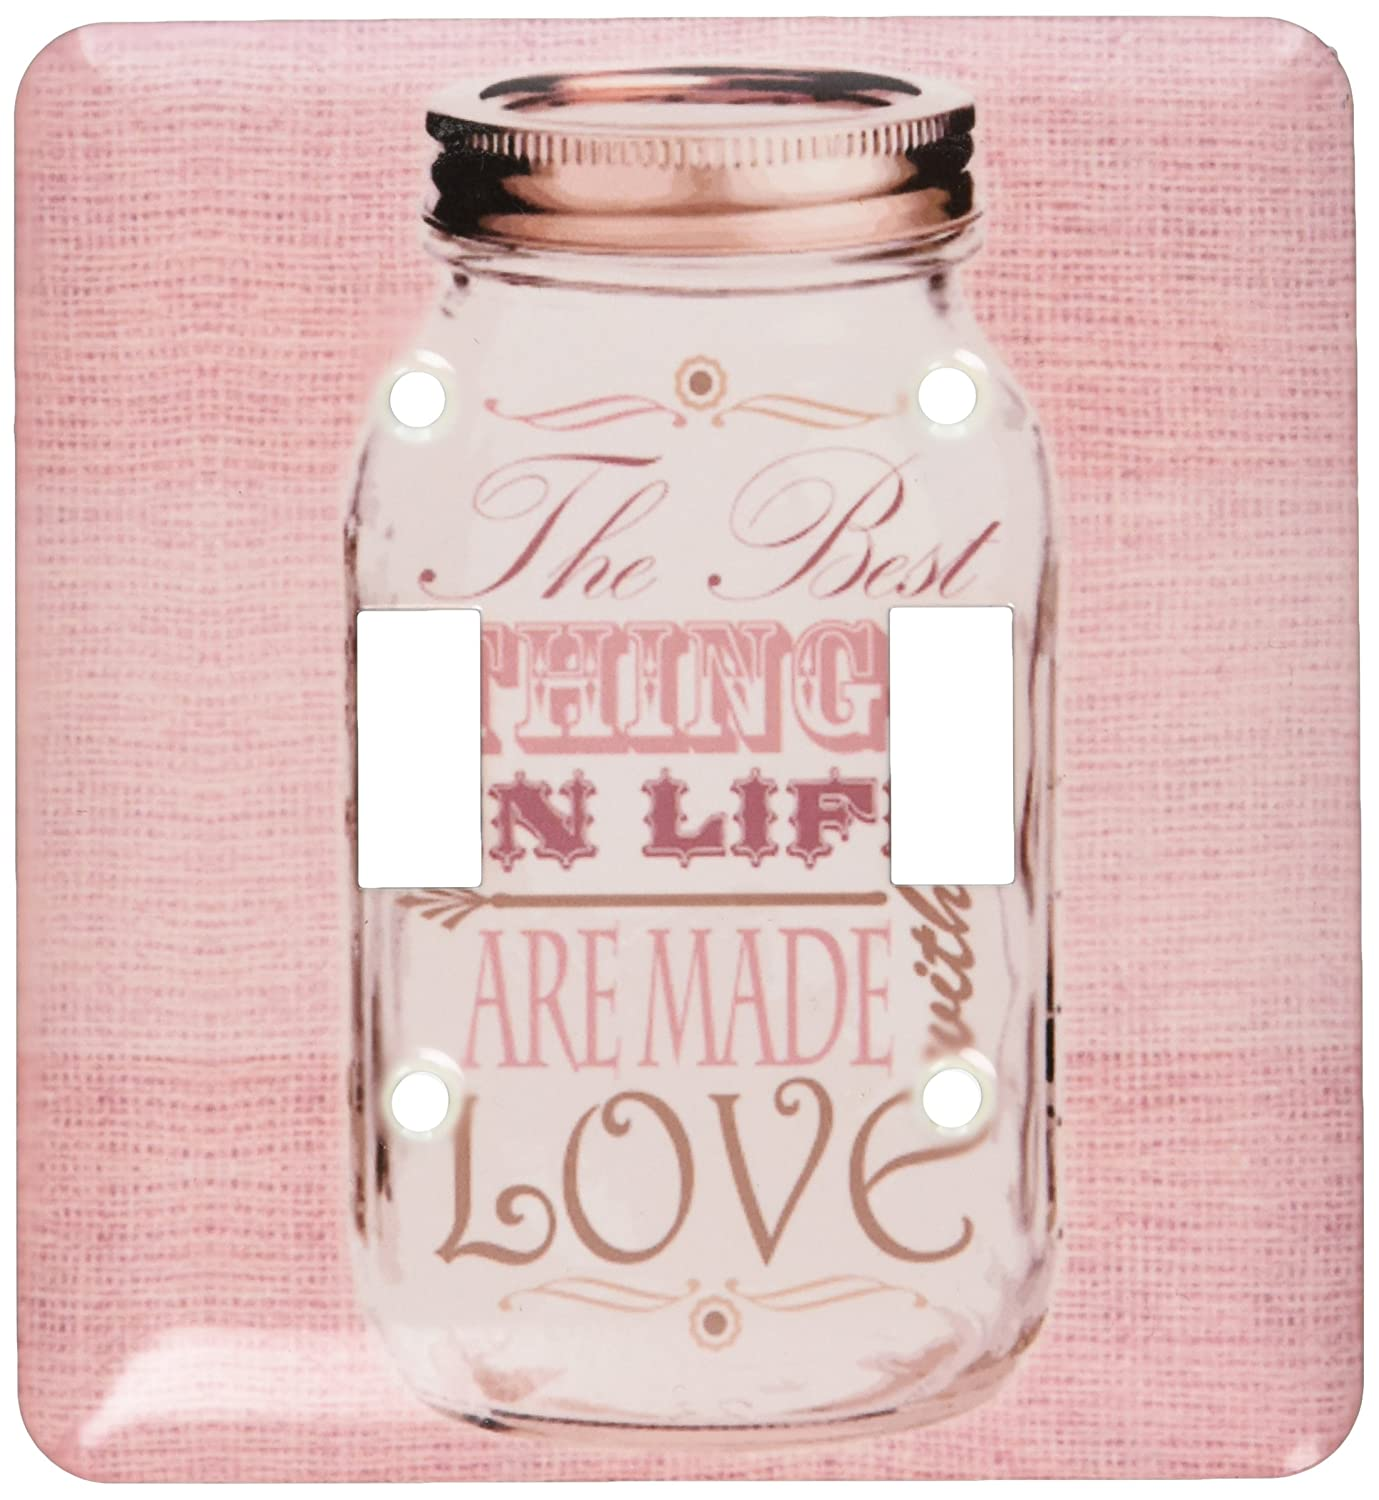 3drose LSP_ Are 128508 Made_ 2 Mason Jar on黄麻布印刷ピンクThe Gifts Best Things In Life Are Made with Love Gifts for the Cookダブル切り替えスイッチ B00DEQZNIQ, ひな福かぐ福:33caf766 --- number-directory.top